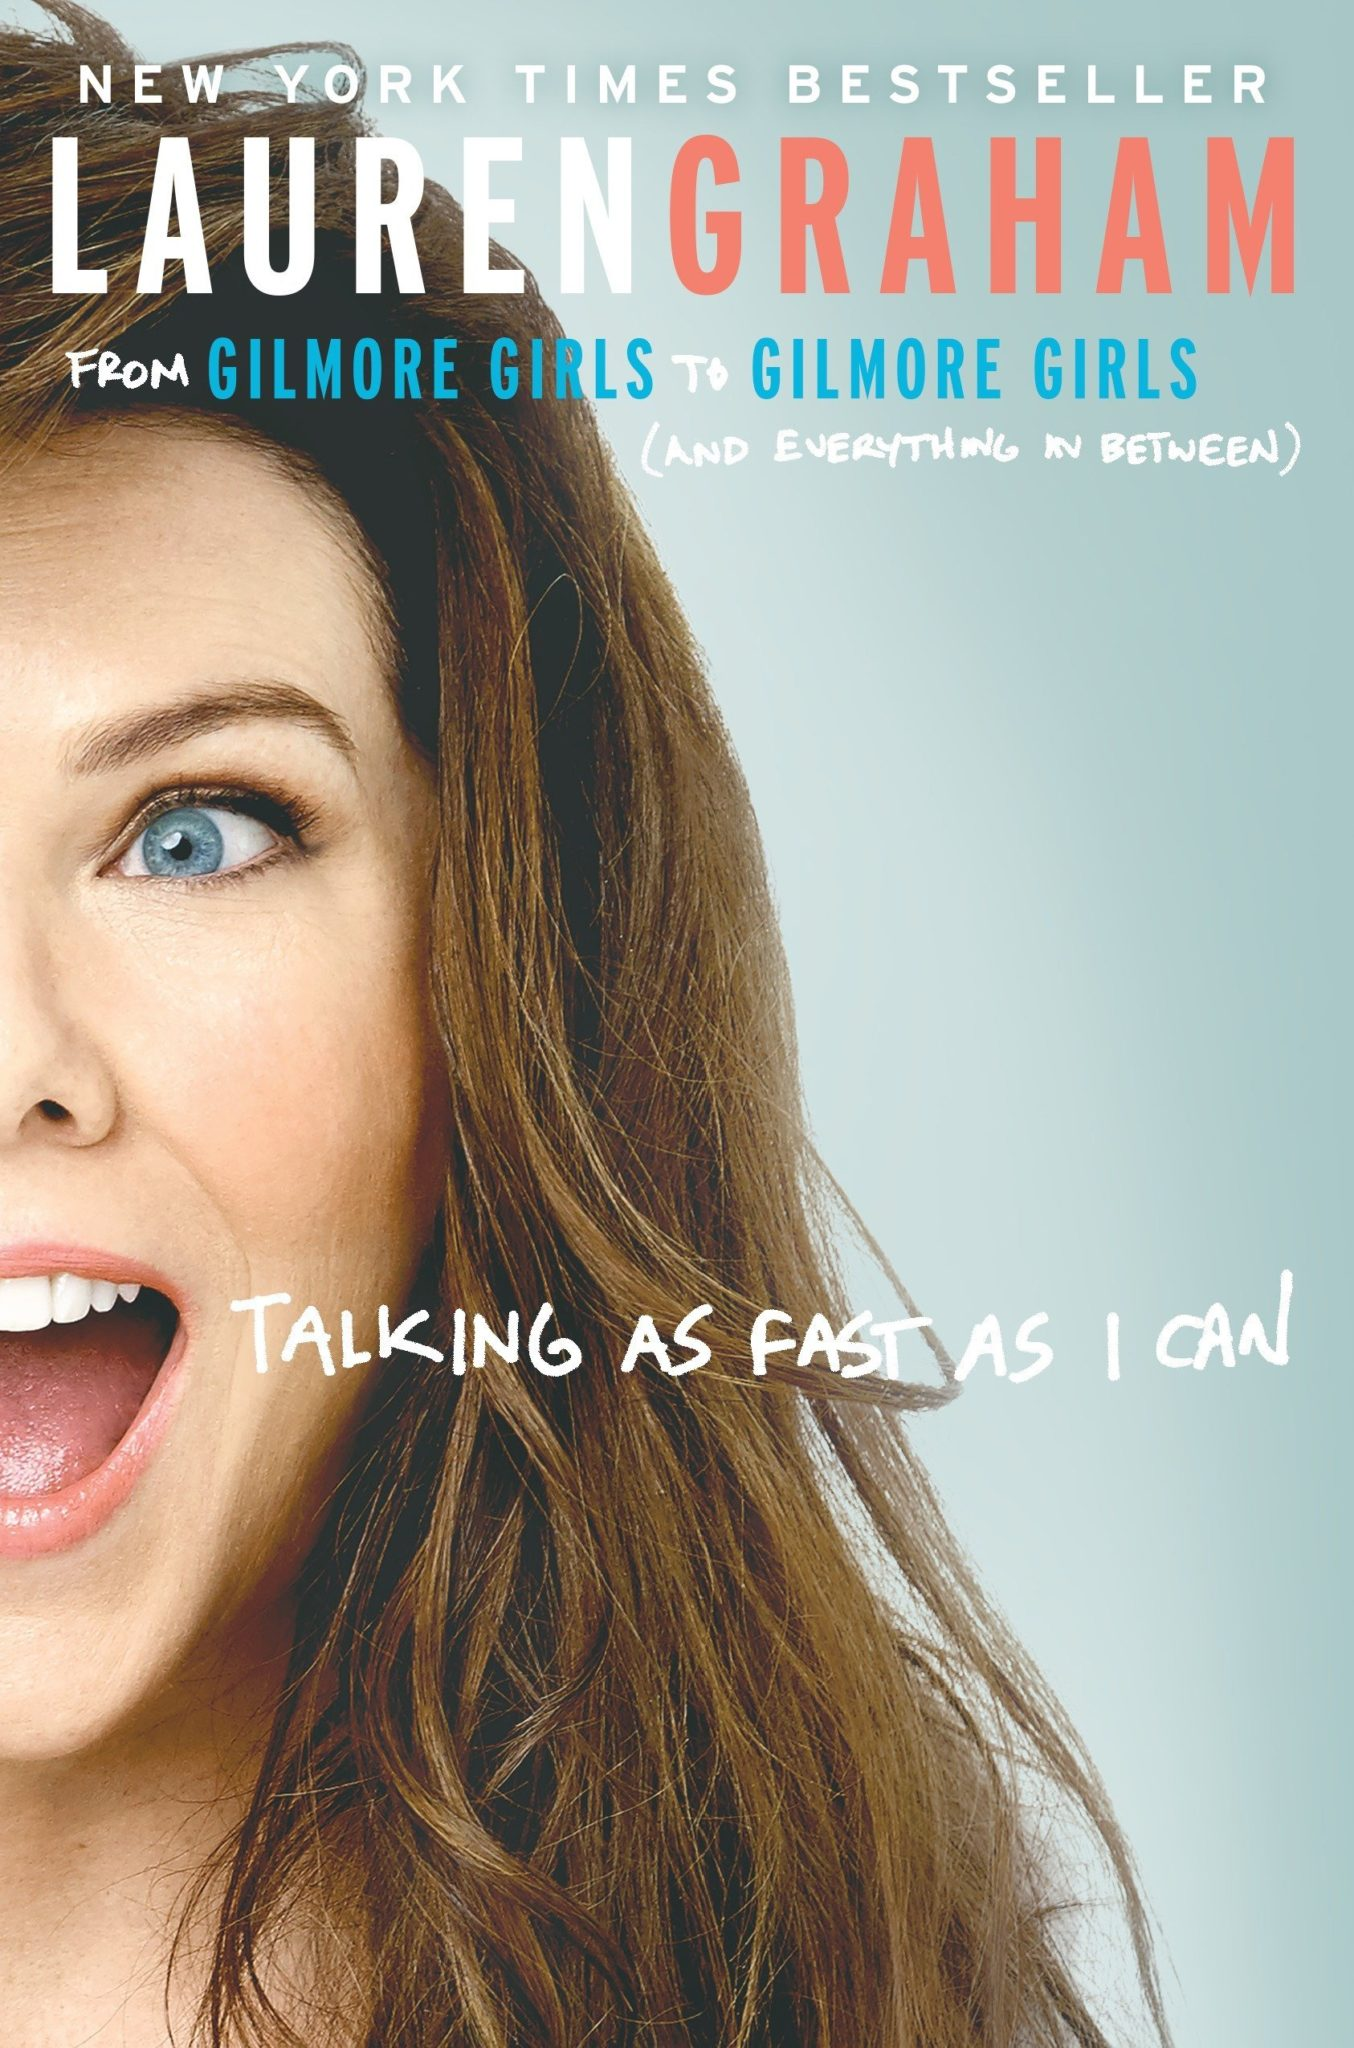 Books I Read in March 2020 - Talking as Fast as I Can - From Gilmore Girls to Gilmore Girls (and Everything in Between) by Lauren Graham   Rhyme & Reason